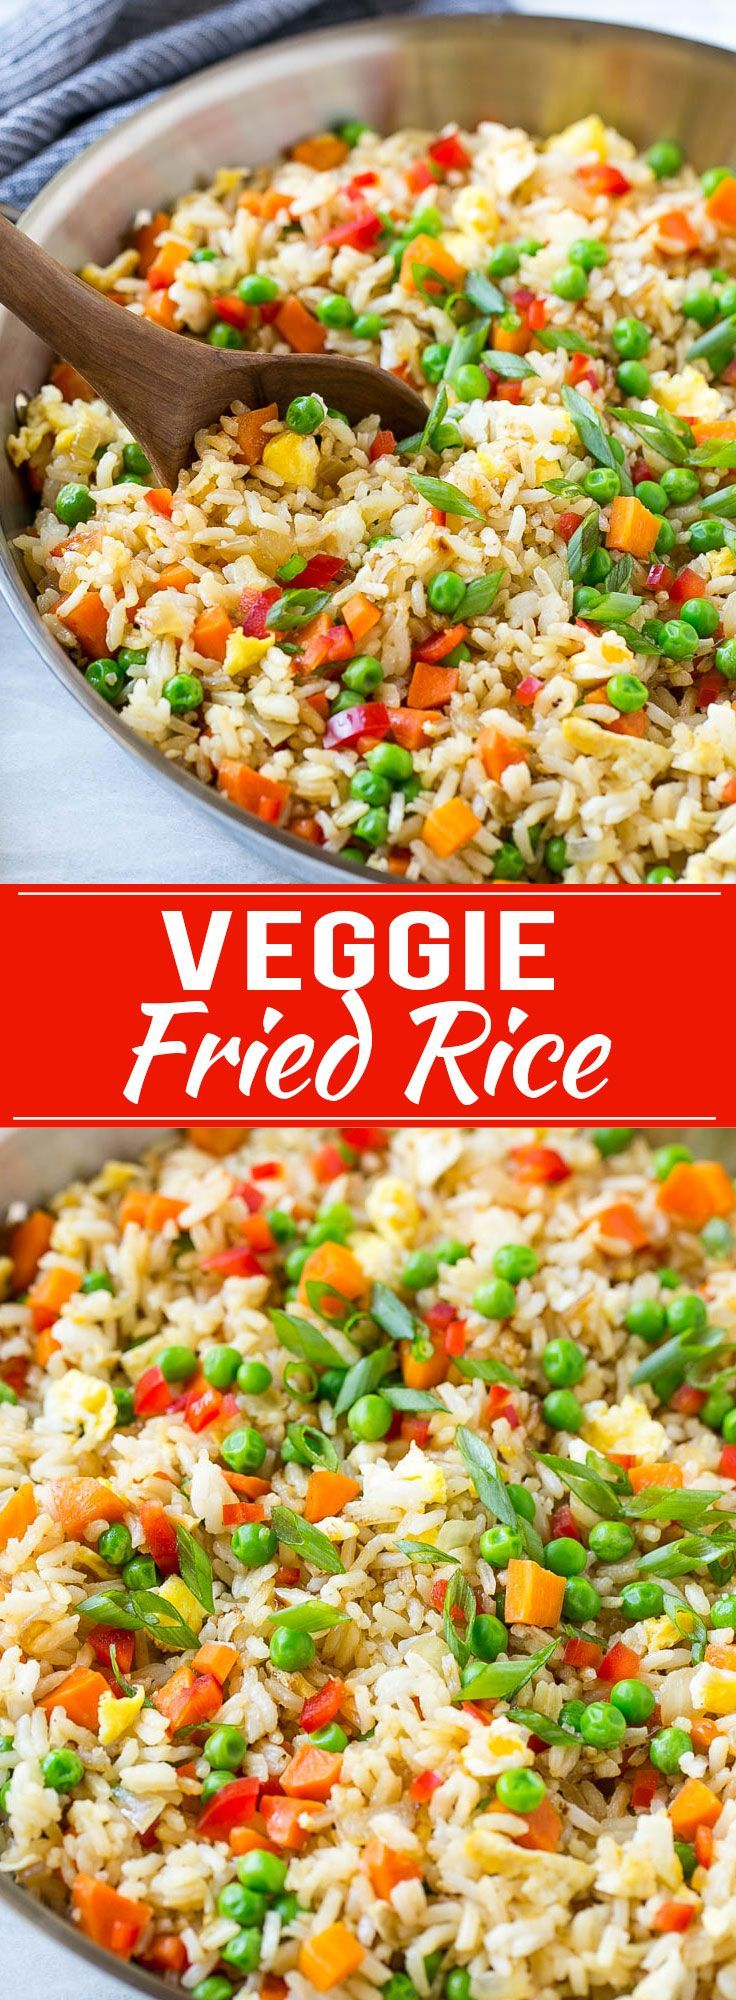 This recipe for veggie fried rice is chock full of colorful veggies and is ready in just 20 minutes! This vegetarian fried rice is the perfect quick and easy side dish that the whole family will love.(Quick Minutes)